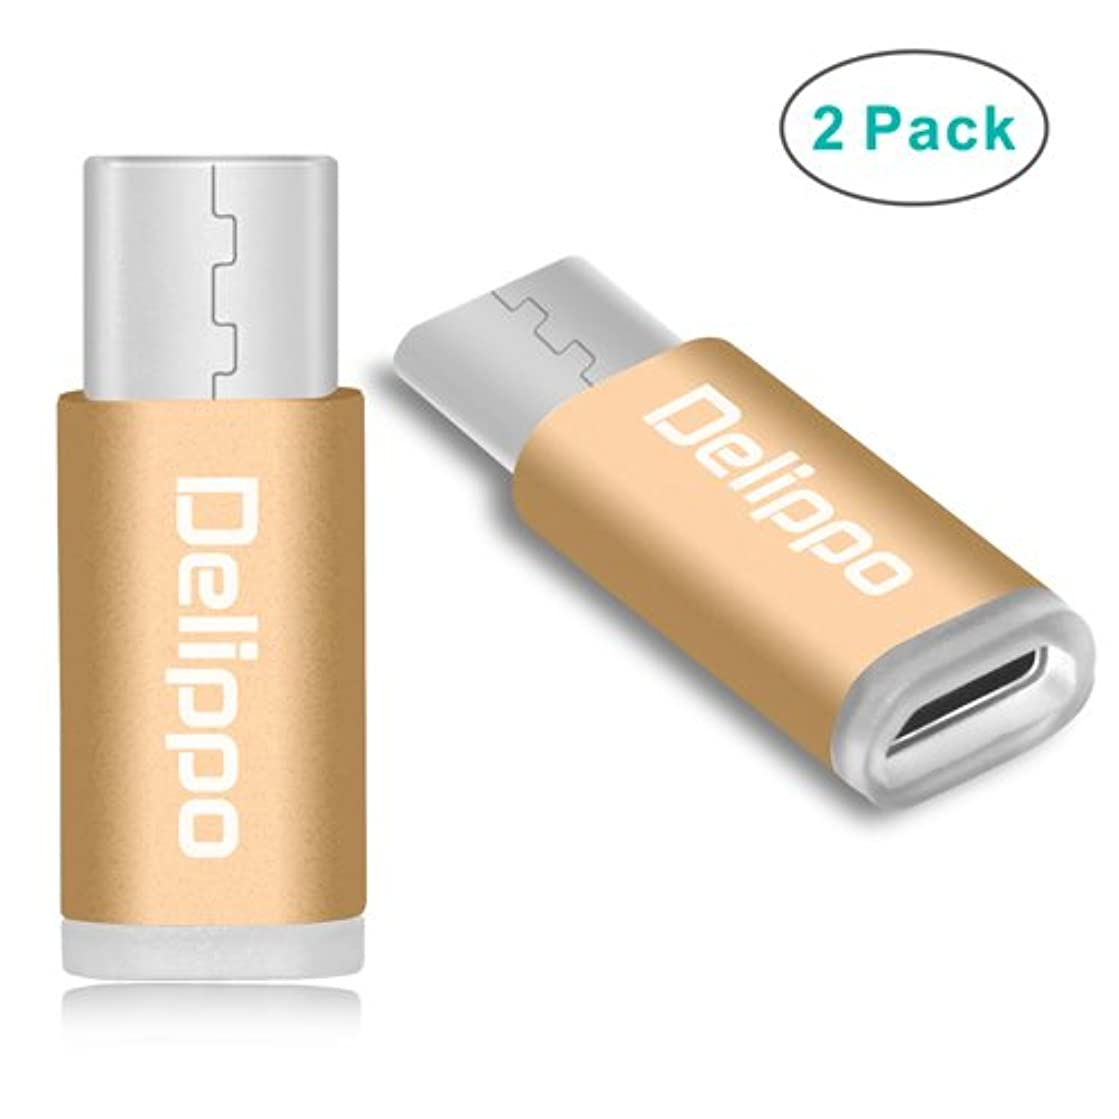 DELIPPO USB C Adapter [2 Pack] USB Type C to Micro USB Convert Connector for Apple MacBook 12 Inch ChromeBook Pixel Nexus 5X 6P HTC10 Nokia N1/OnePlus 2 Tablet and More (Gold)